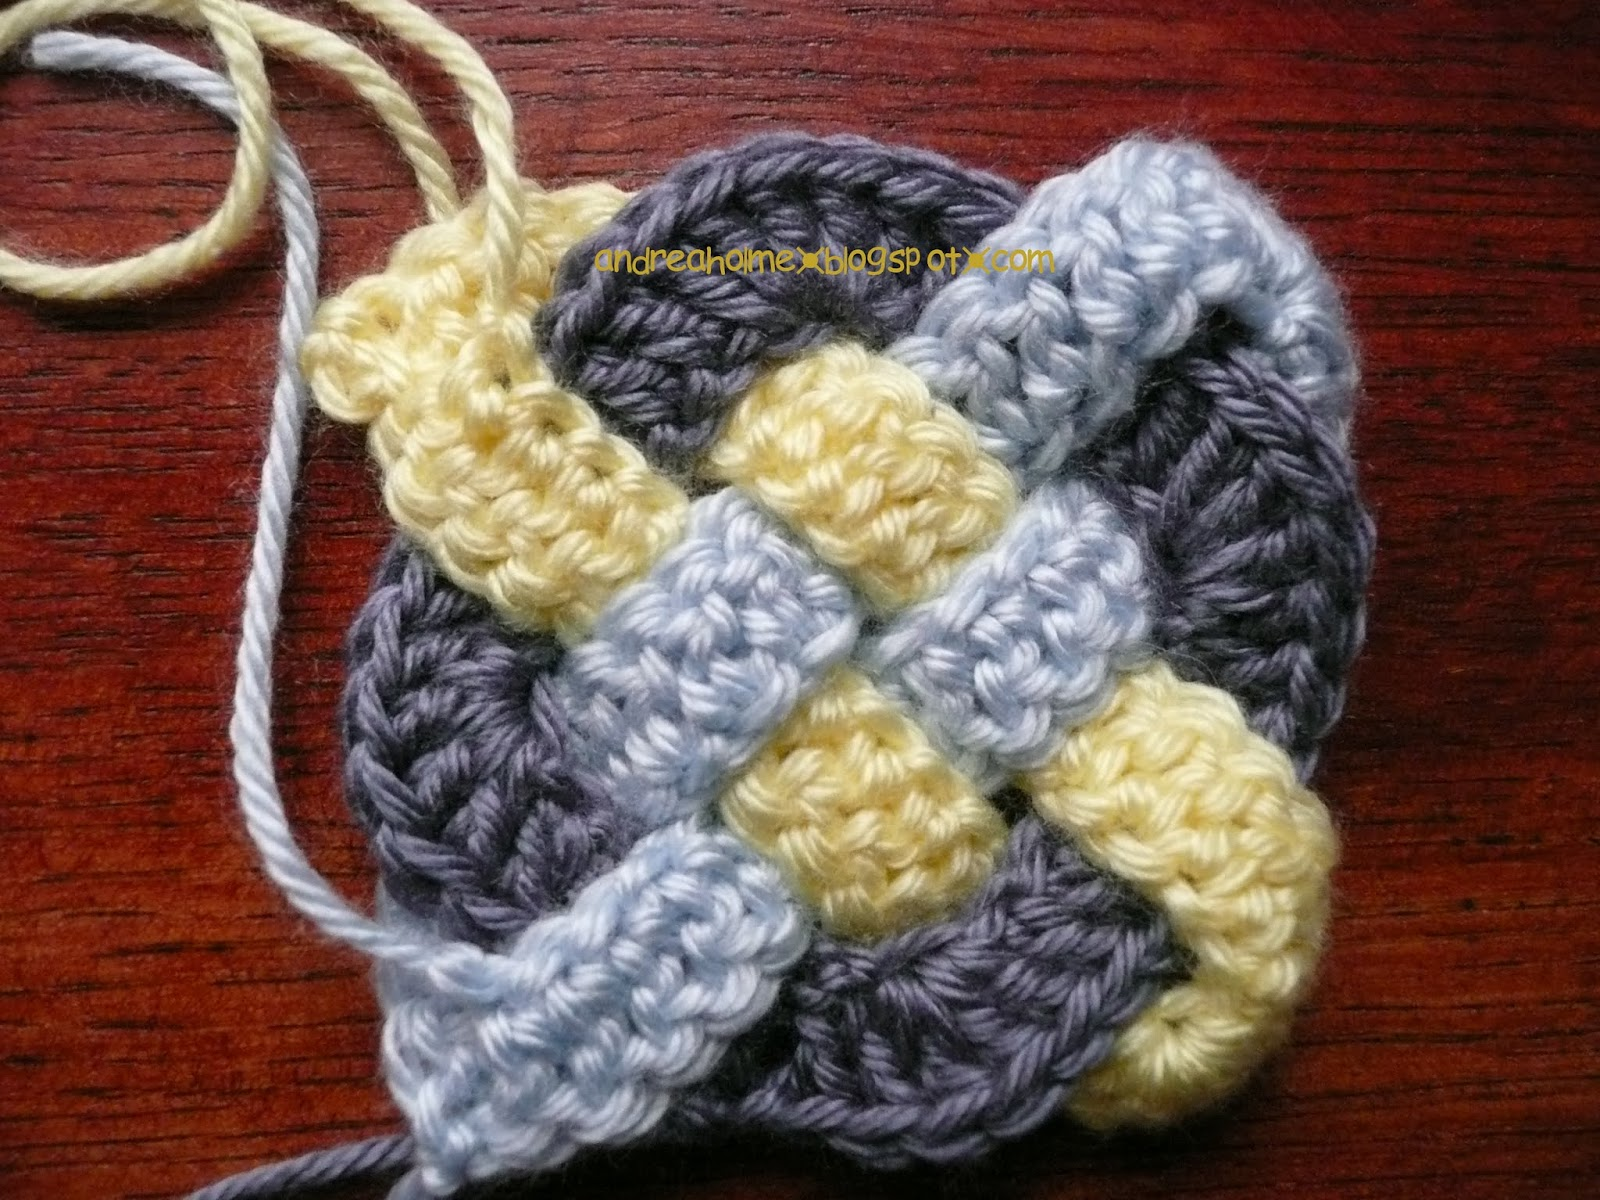 Crochet Knot : Drea_Dear: National Crochet Month - Celtic Knot Squares